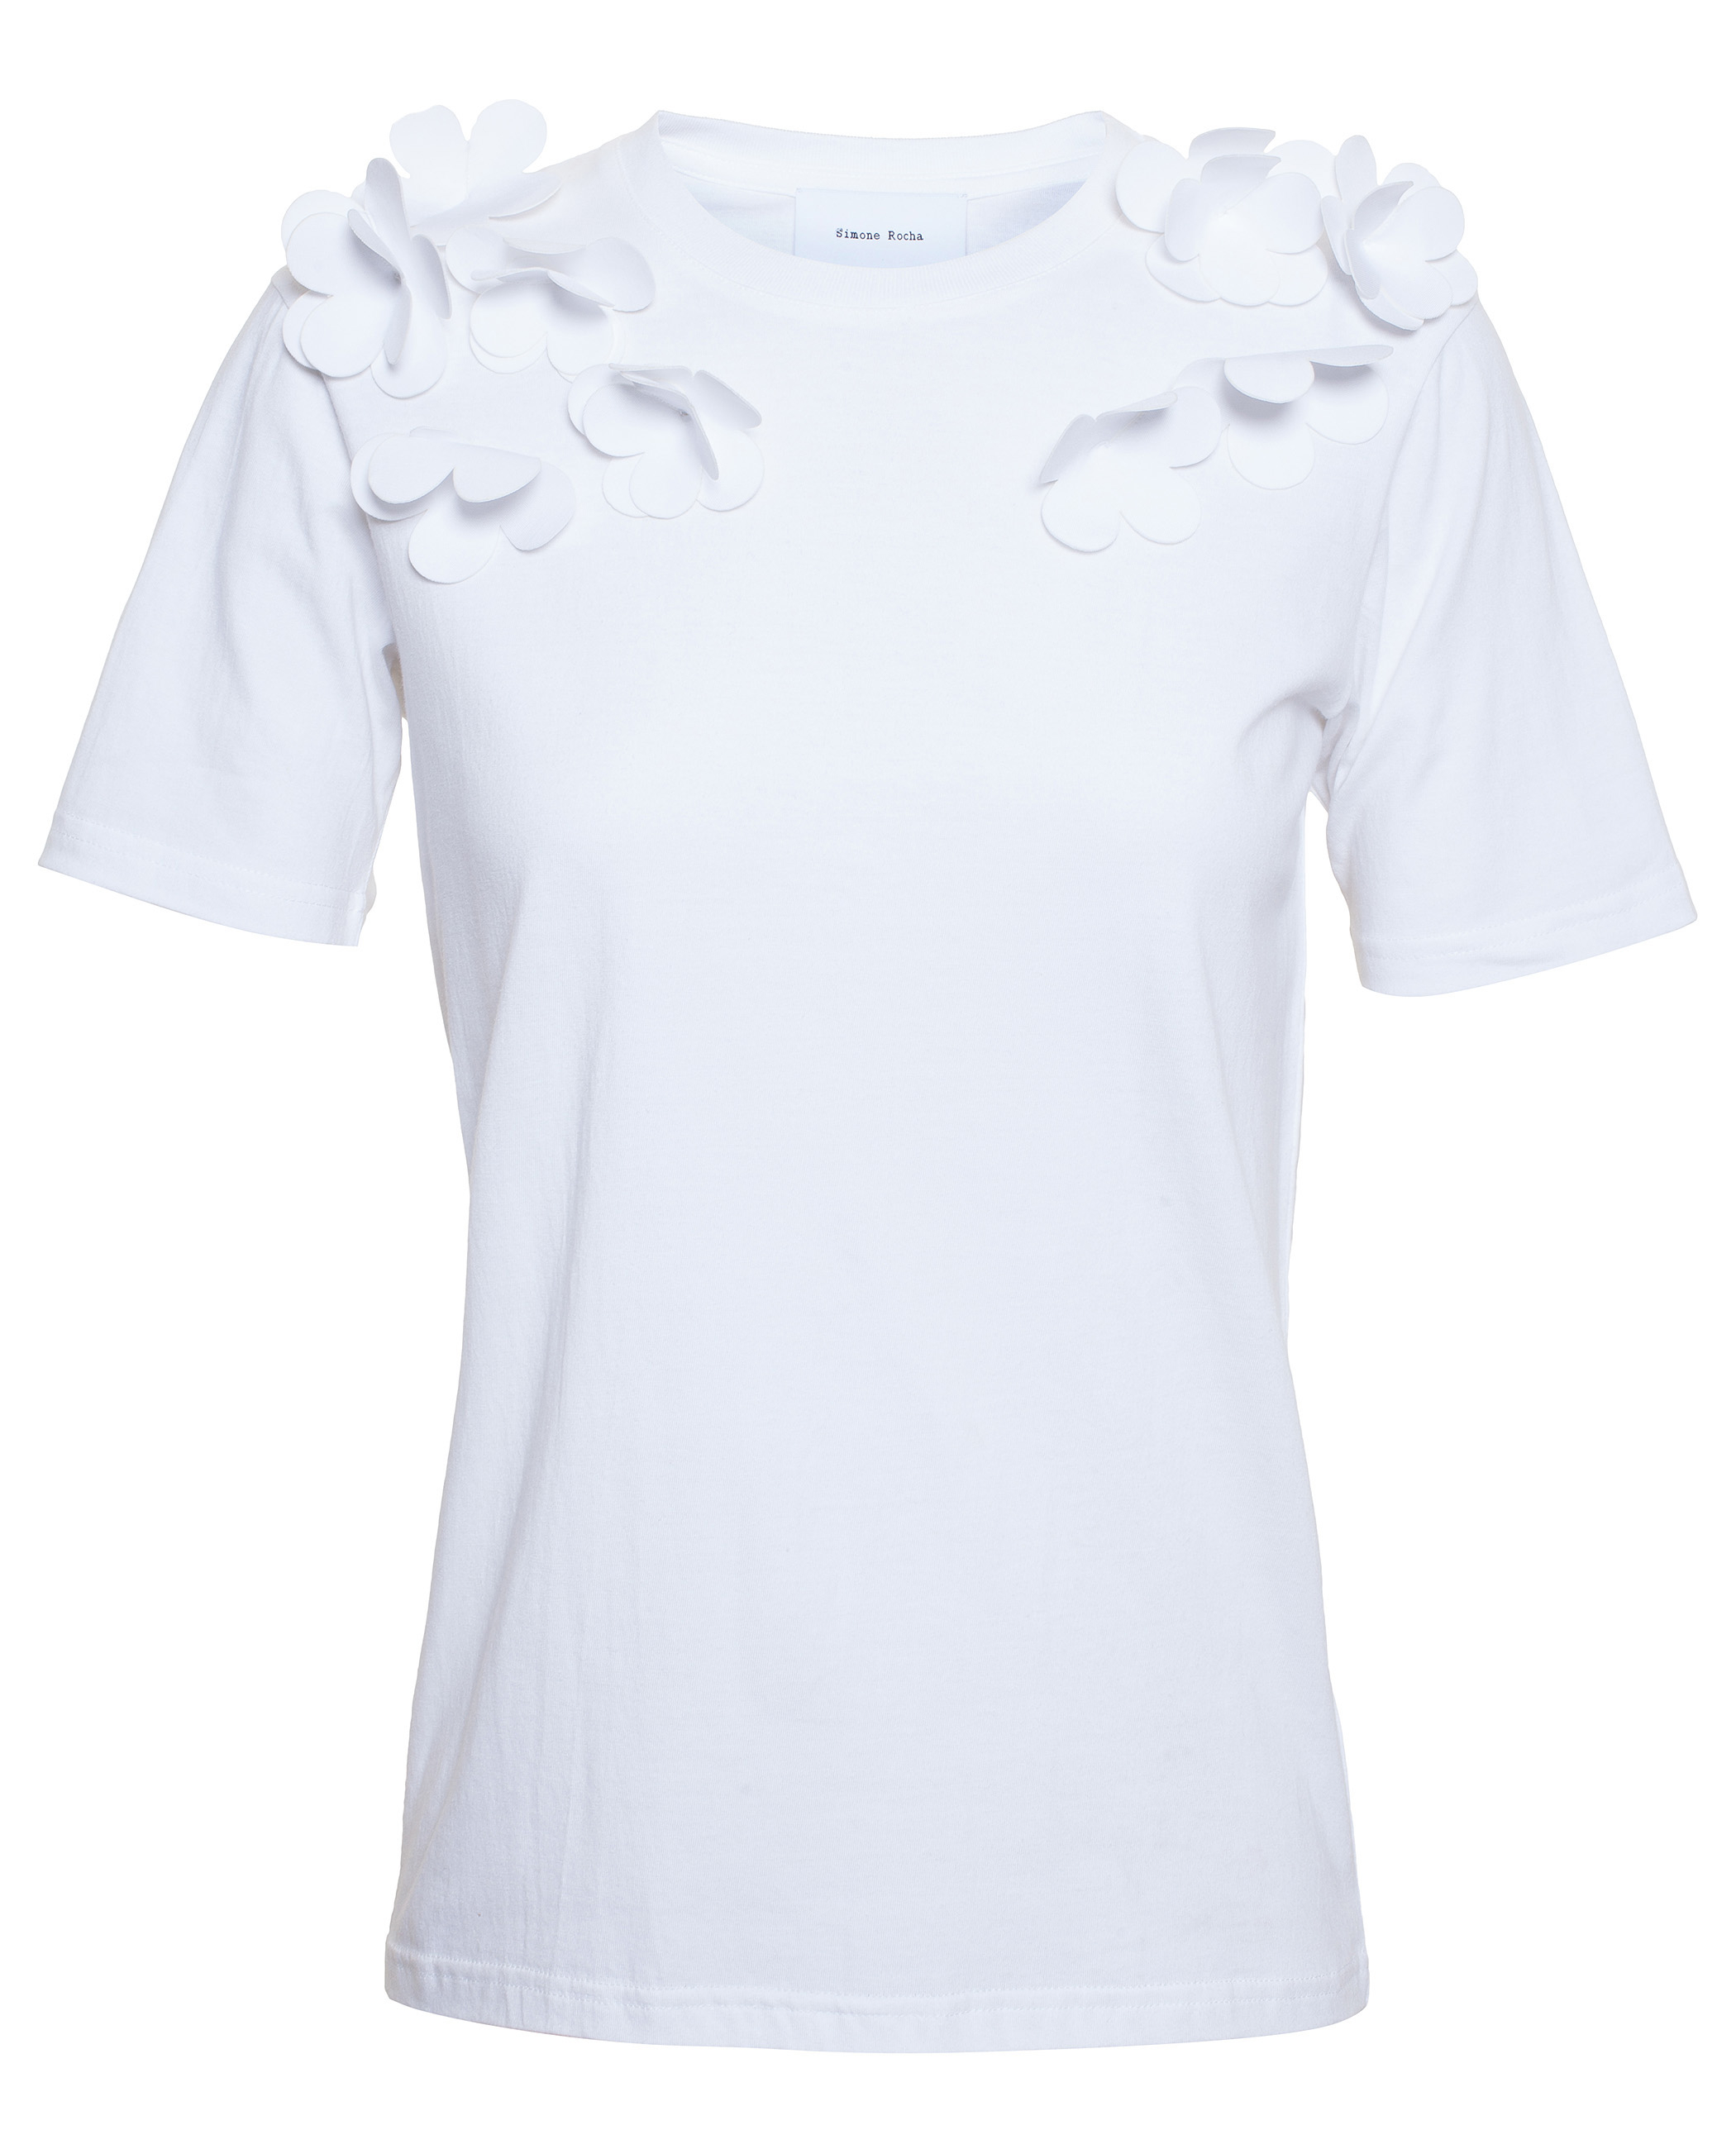 Lyst simone rocha t shirt with floral appliqu in white for Applique shirts for sale